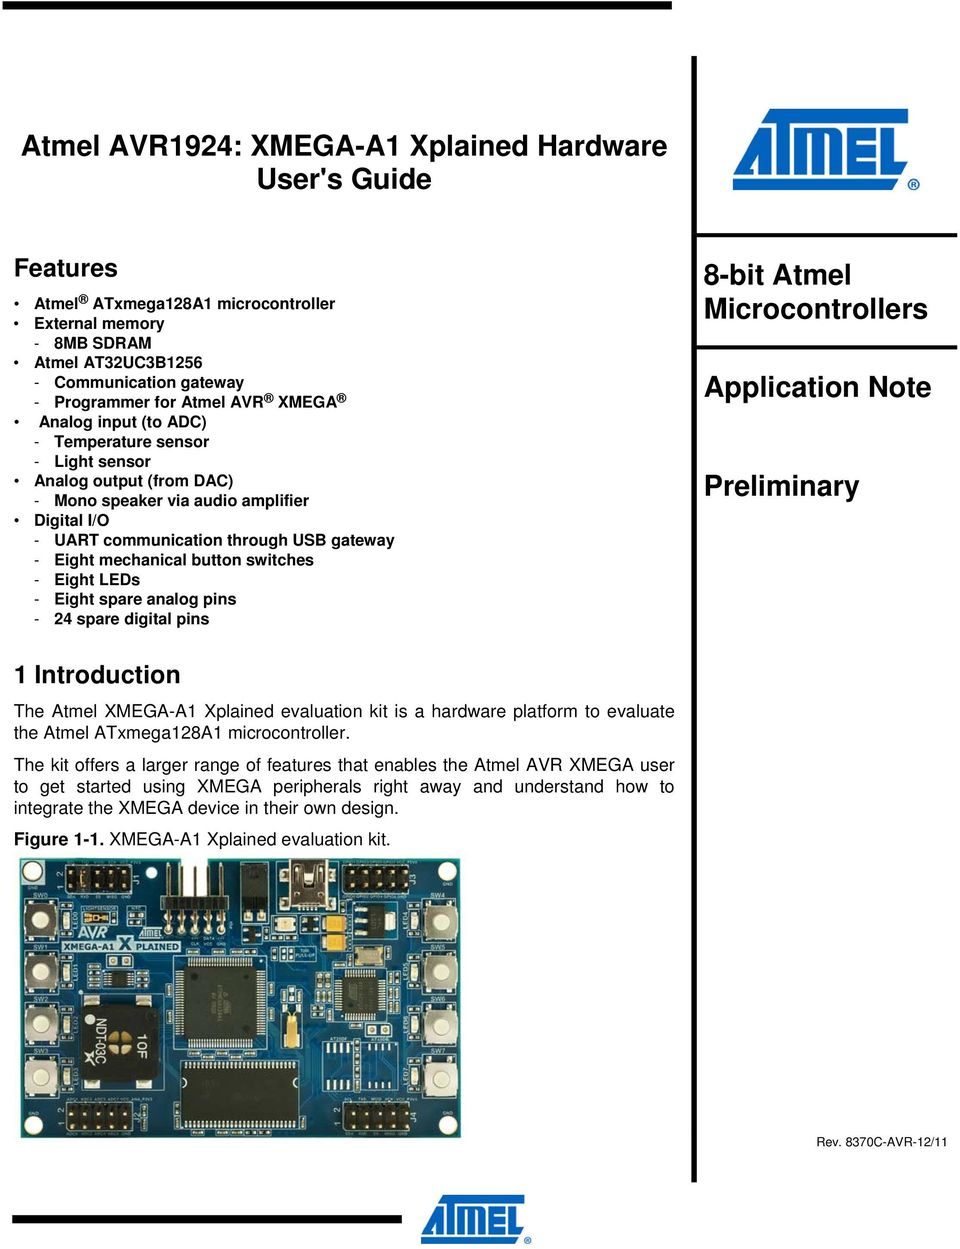 button switches - Eight LEDs - Eight spare analog pins - 24 spare digital pins 8-bit Atmel Microcontrollers Application Note Preliminary 1 Introduction The Atmel XMEGA-A1 Xplained evaluation kit is a